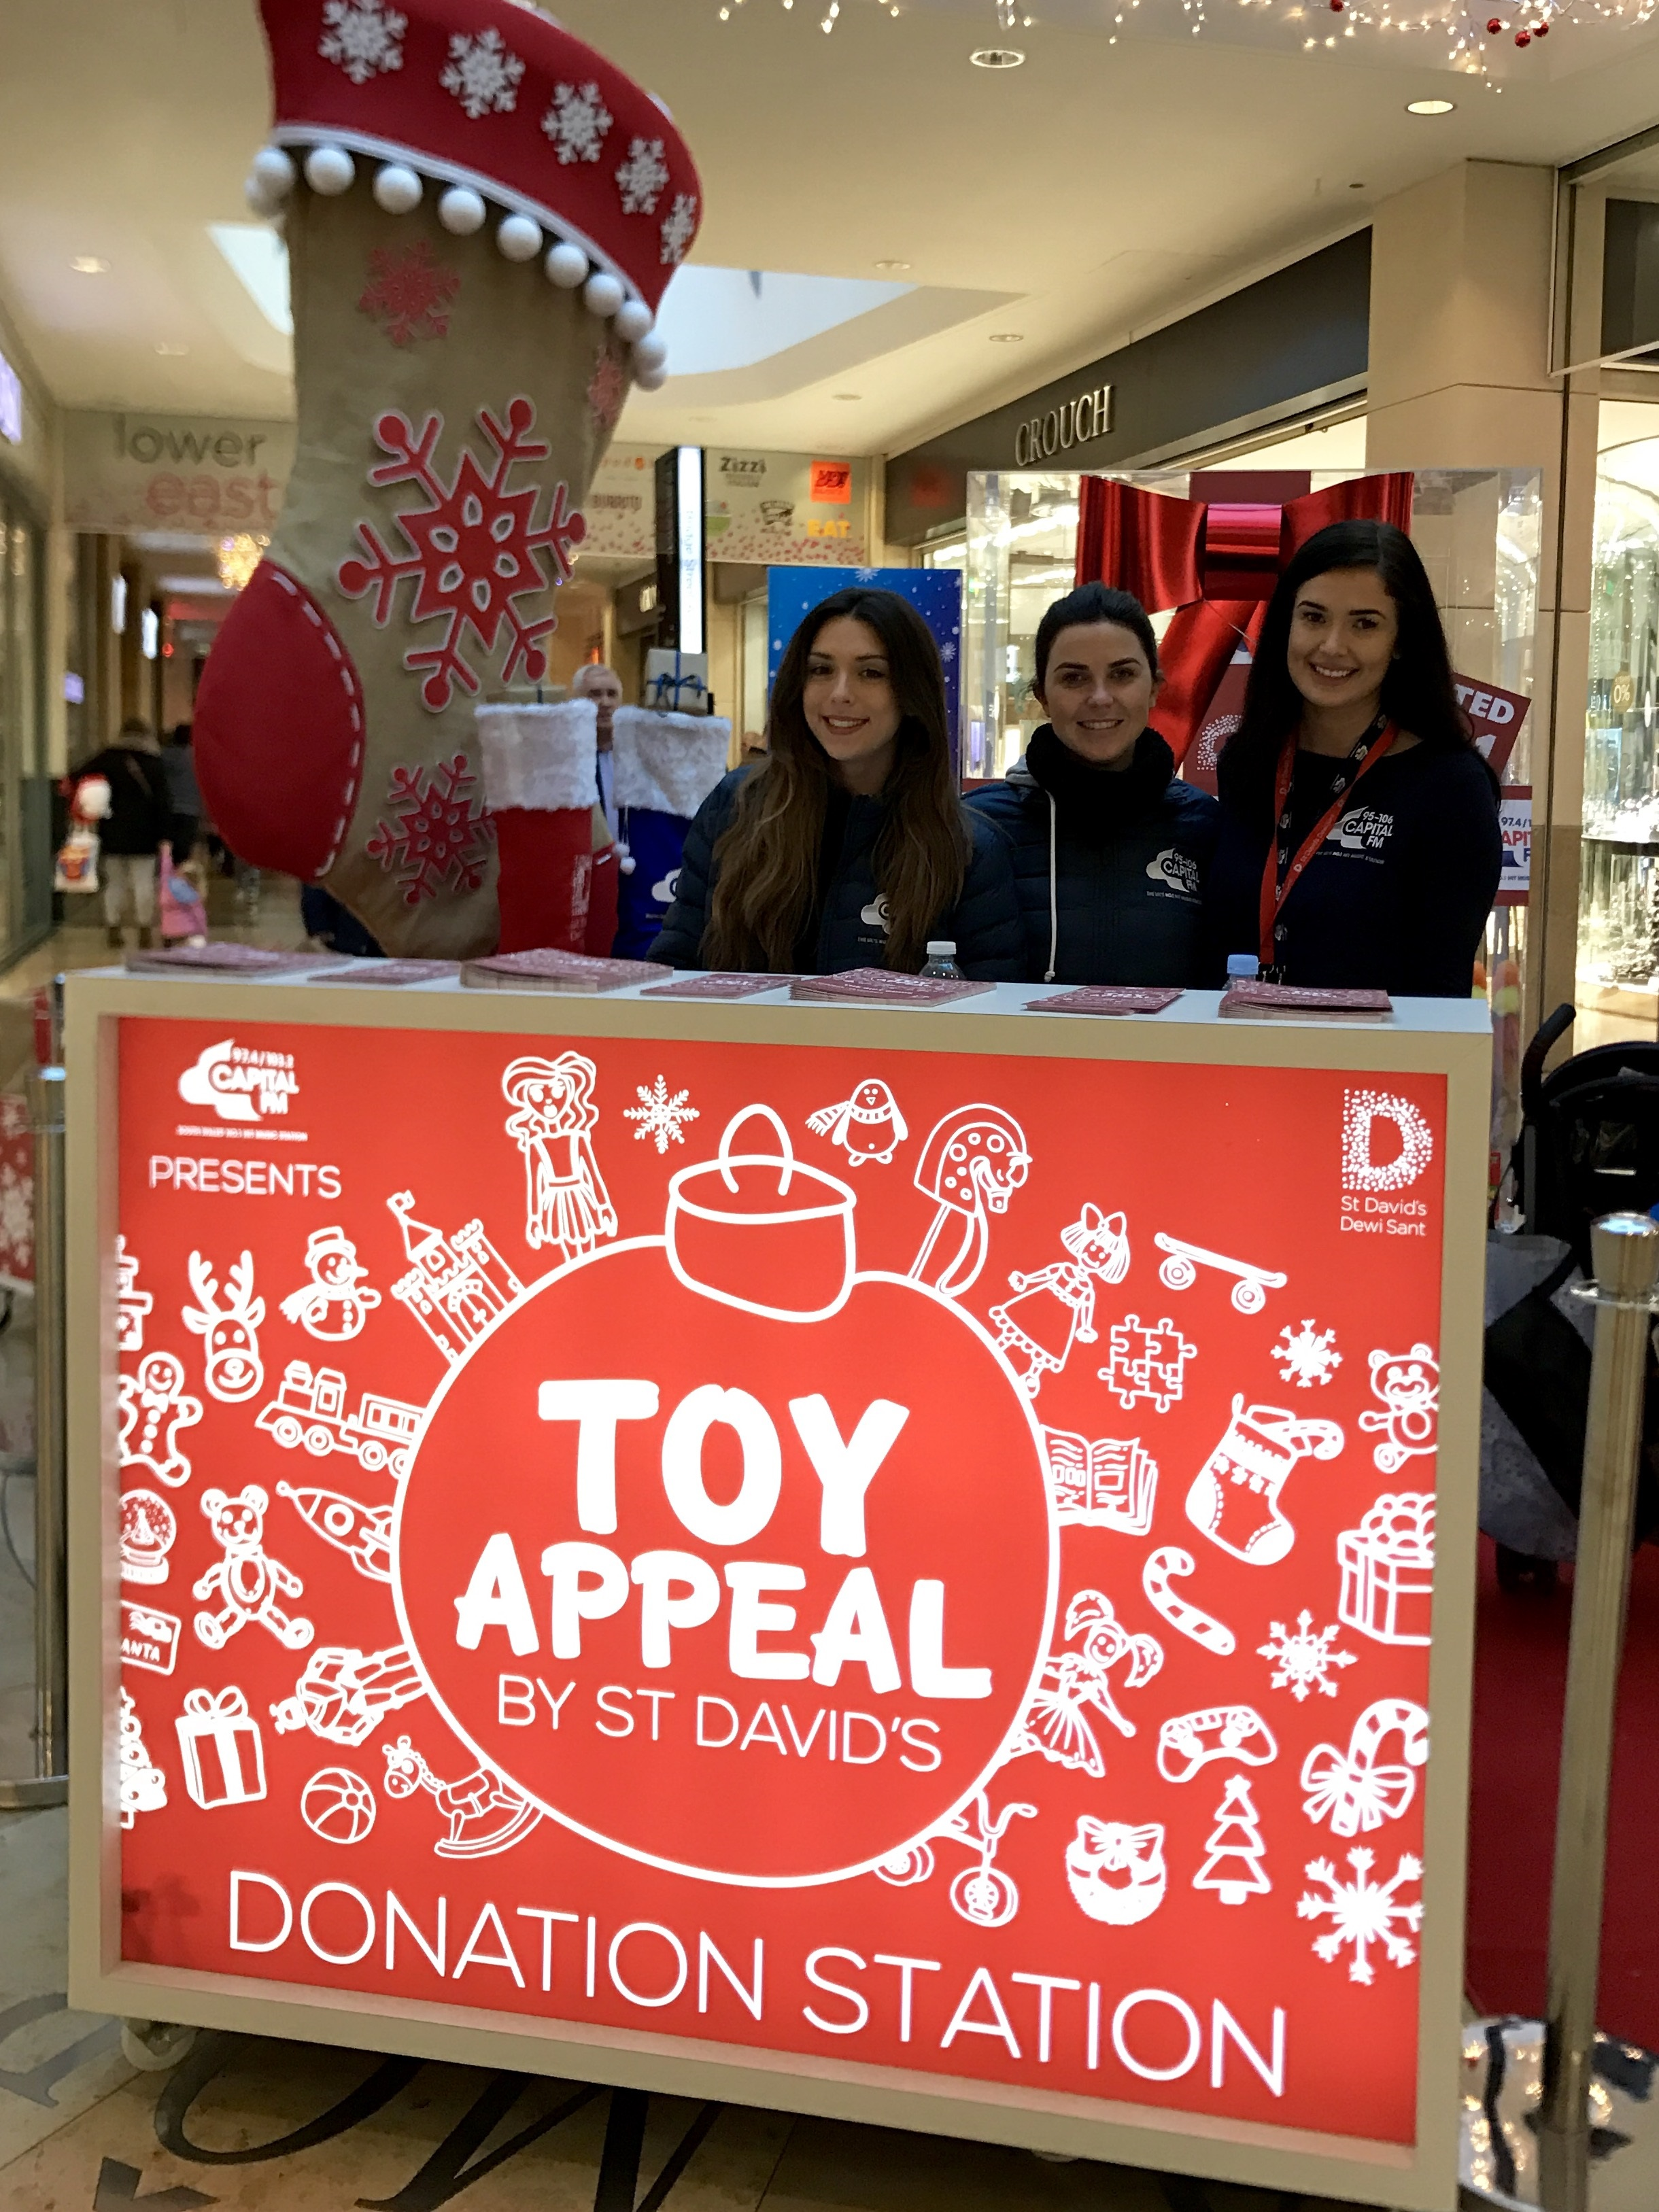 St David's Toy Appeal 2016